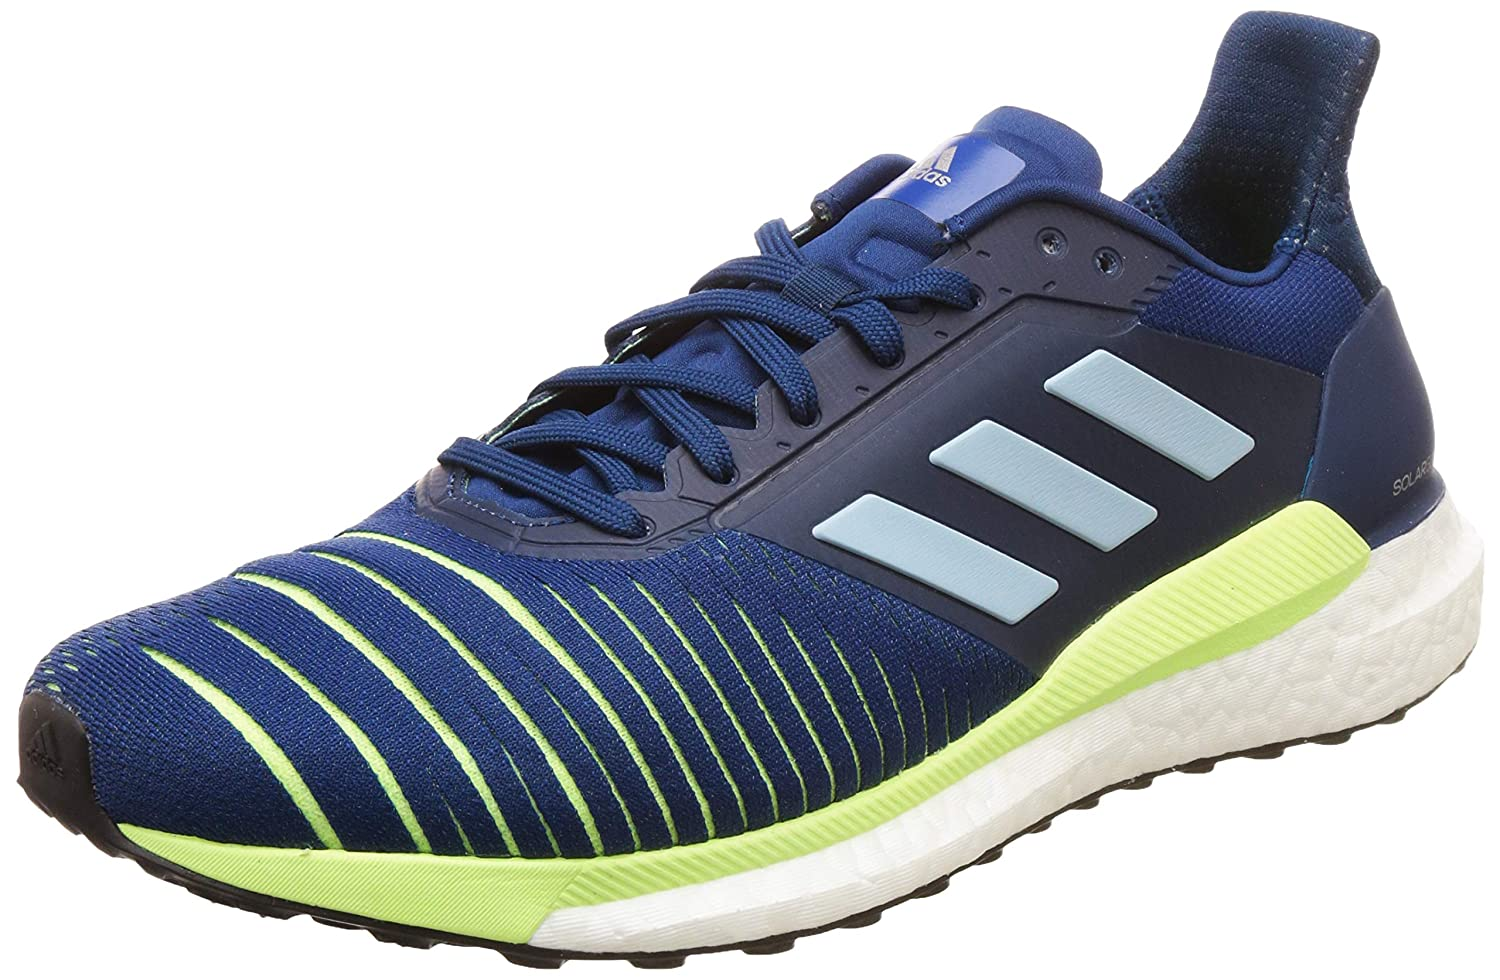 reputable site 9ee79 9b3d6 Amazon.com   adidas Solar Glide Running Shoes - SS19   Running